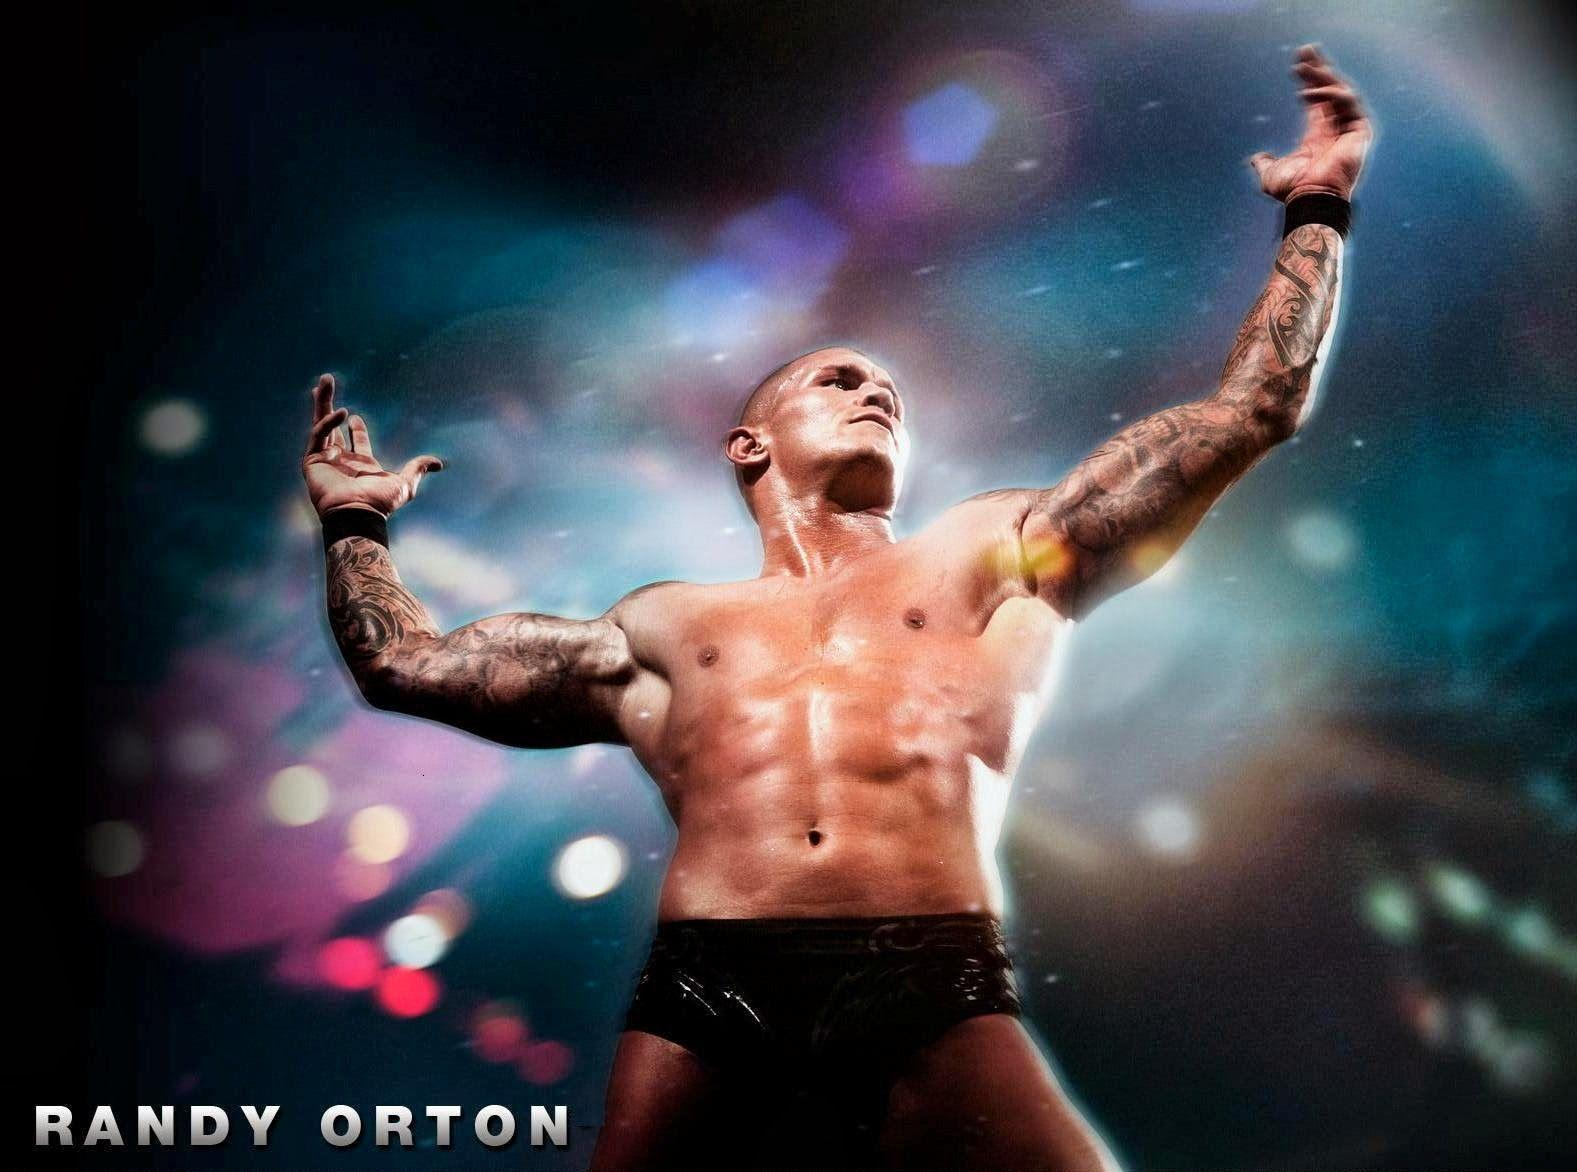 Randy Orton Hd Wallpapers Free Download | WWE HD WALLPAPER FREE ...